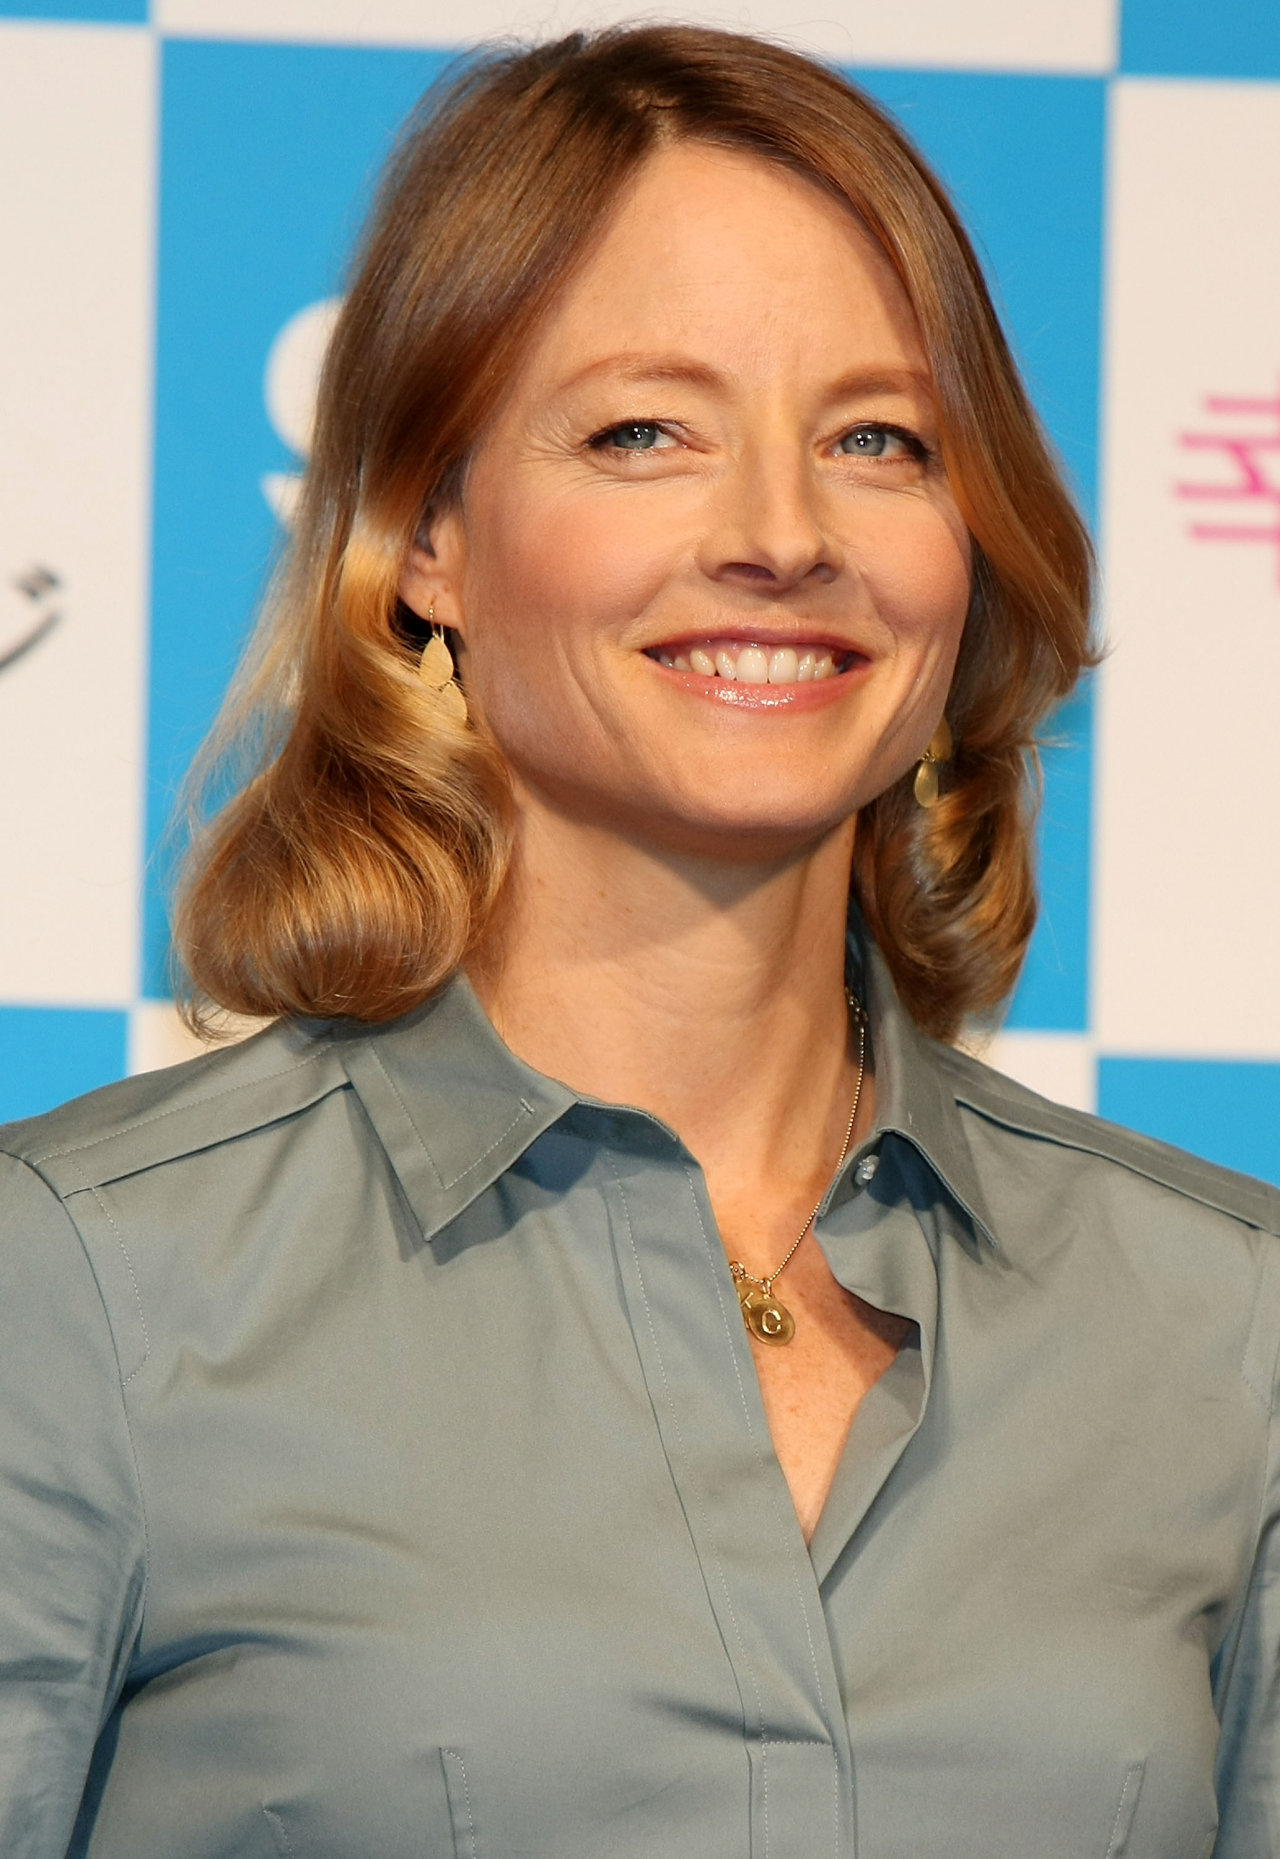 Jodie Foster - Images Actress